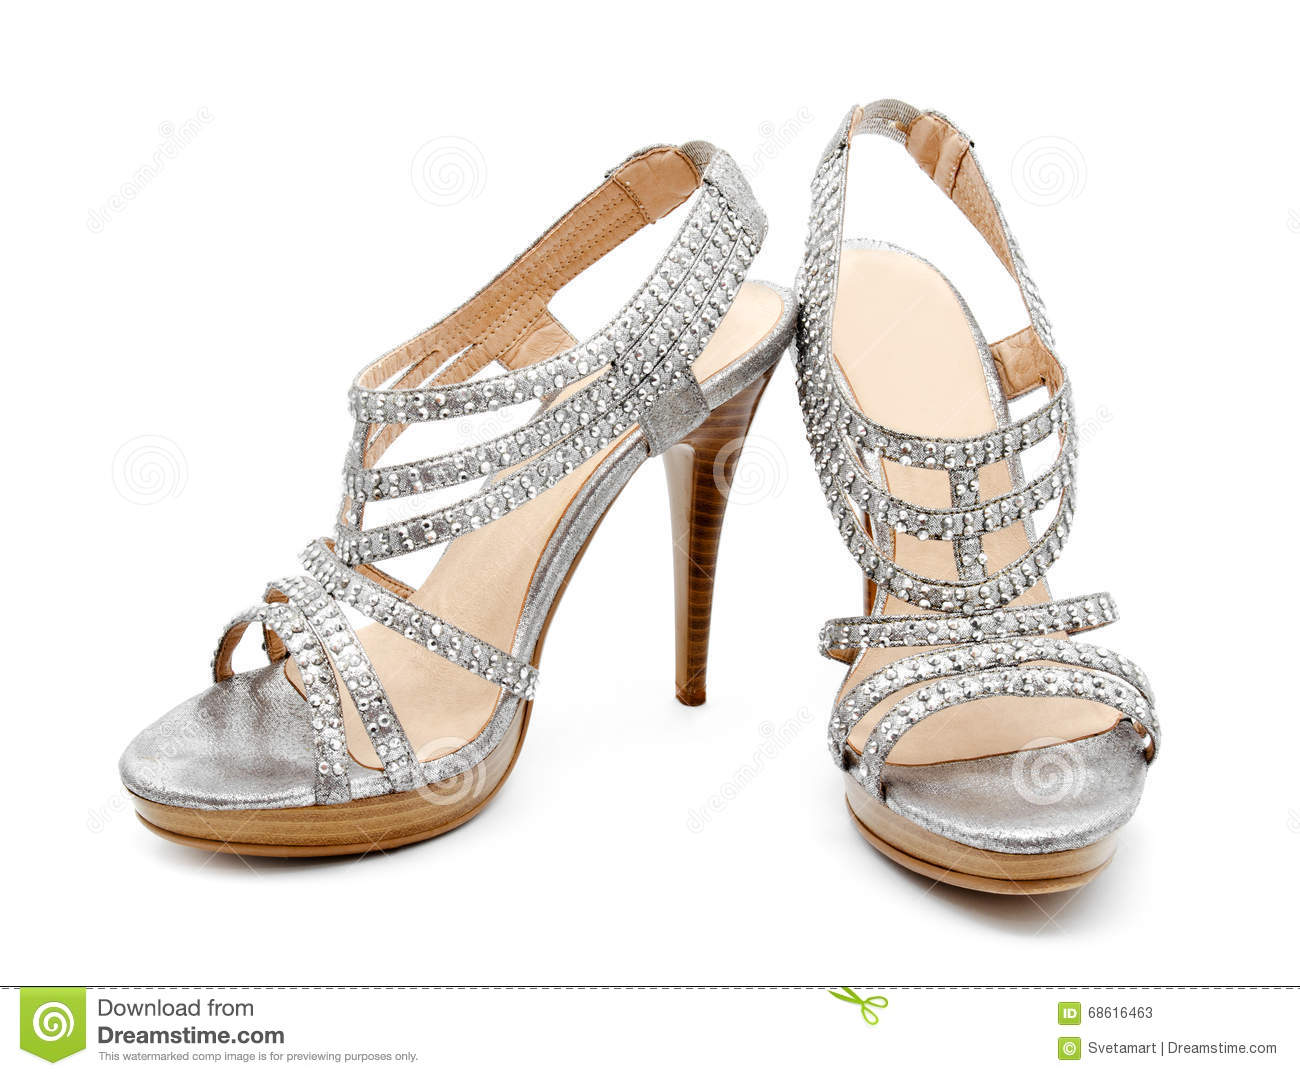 c44f0cfae2a Silver High Heel Women Shoe Isolated Stock Image - Image of shoe ...